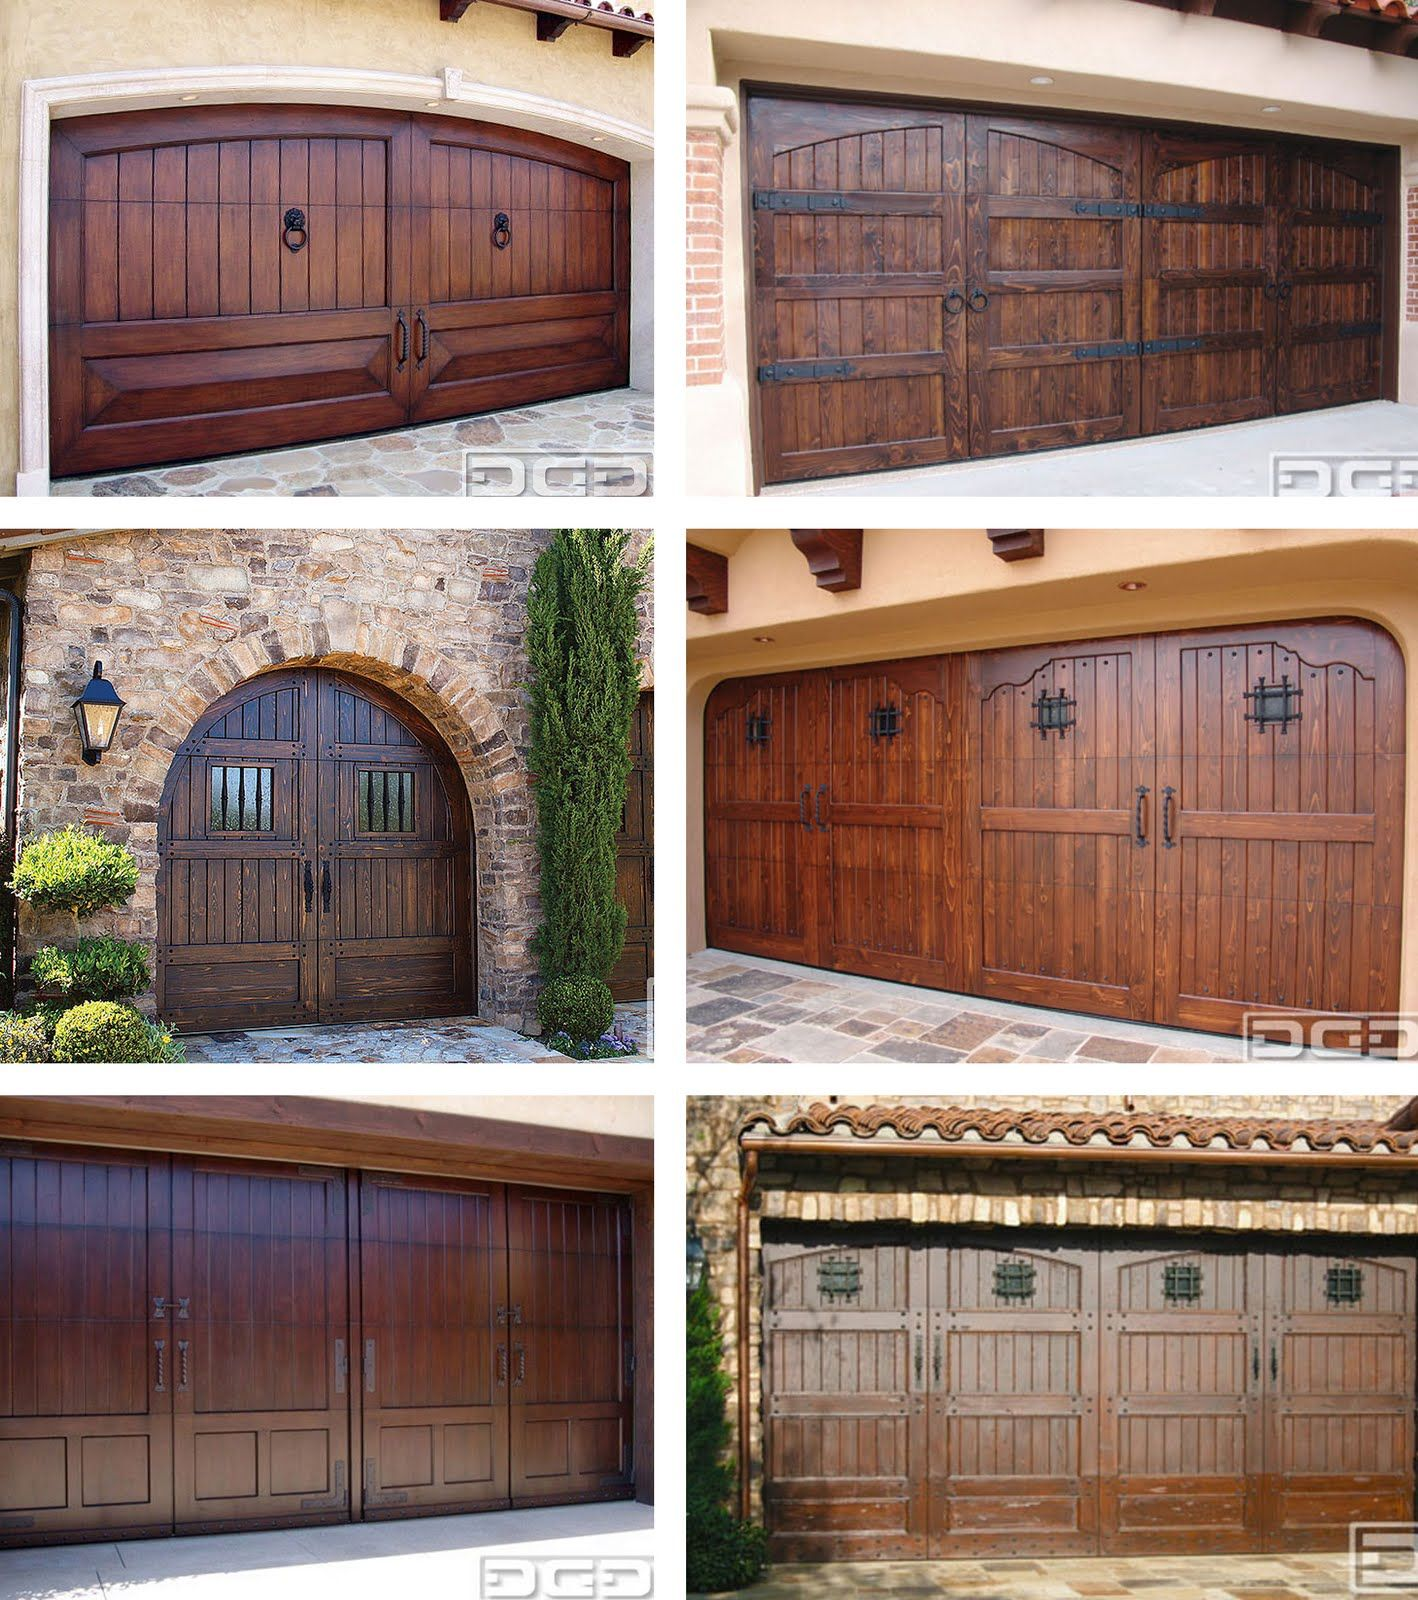 Decorative Nail Heads Ive Always Loved The Look Of Rustic Wood Doors Stained Dark With